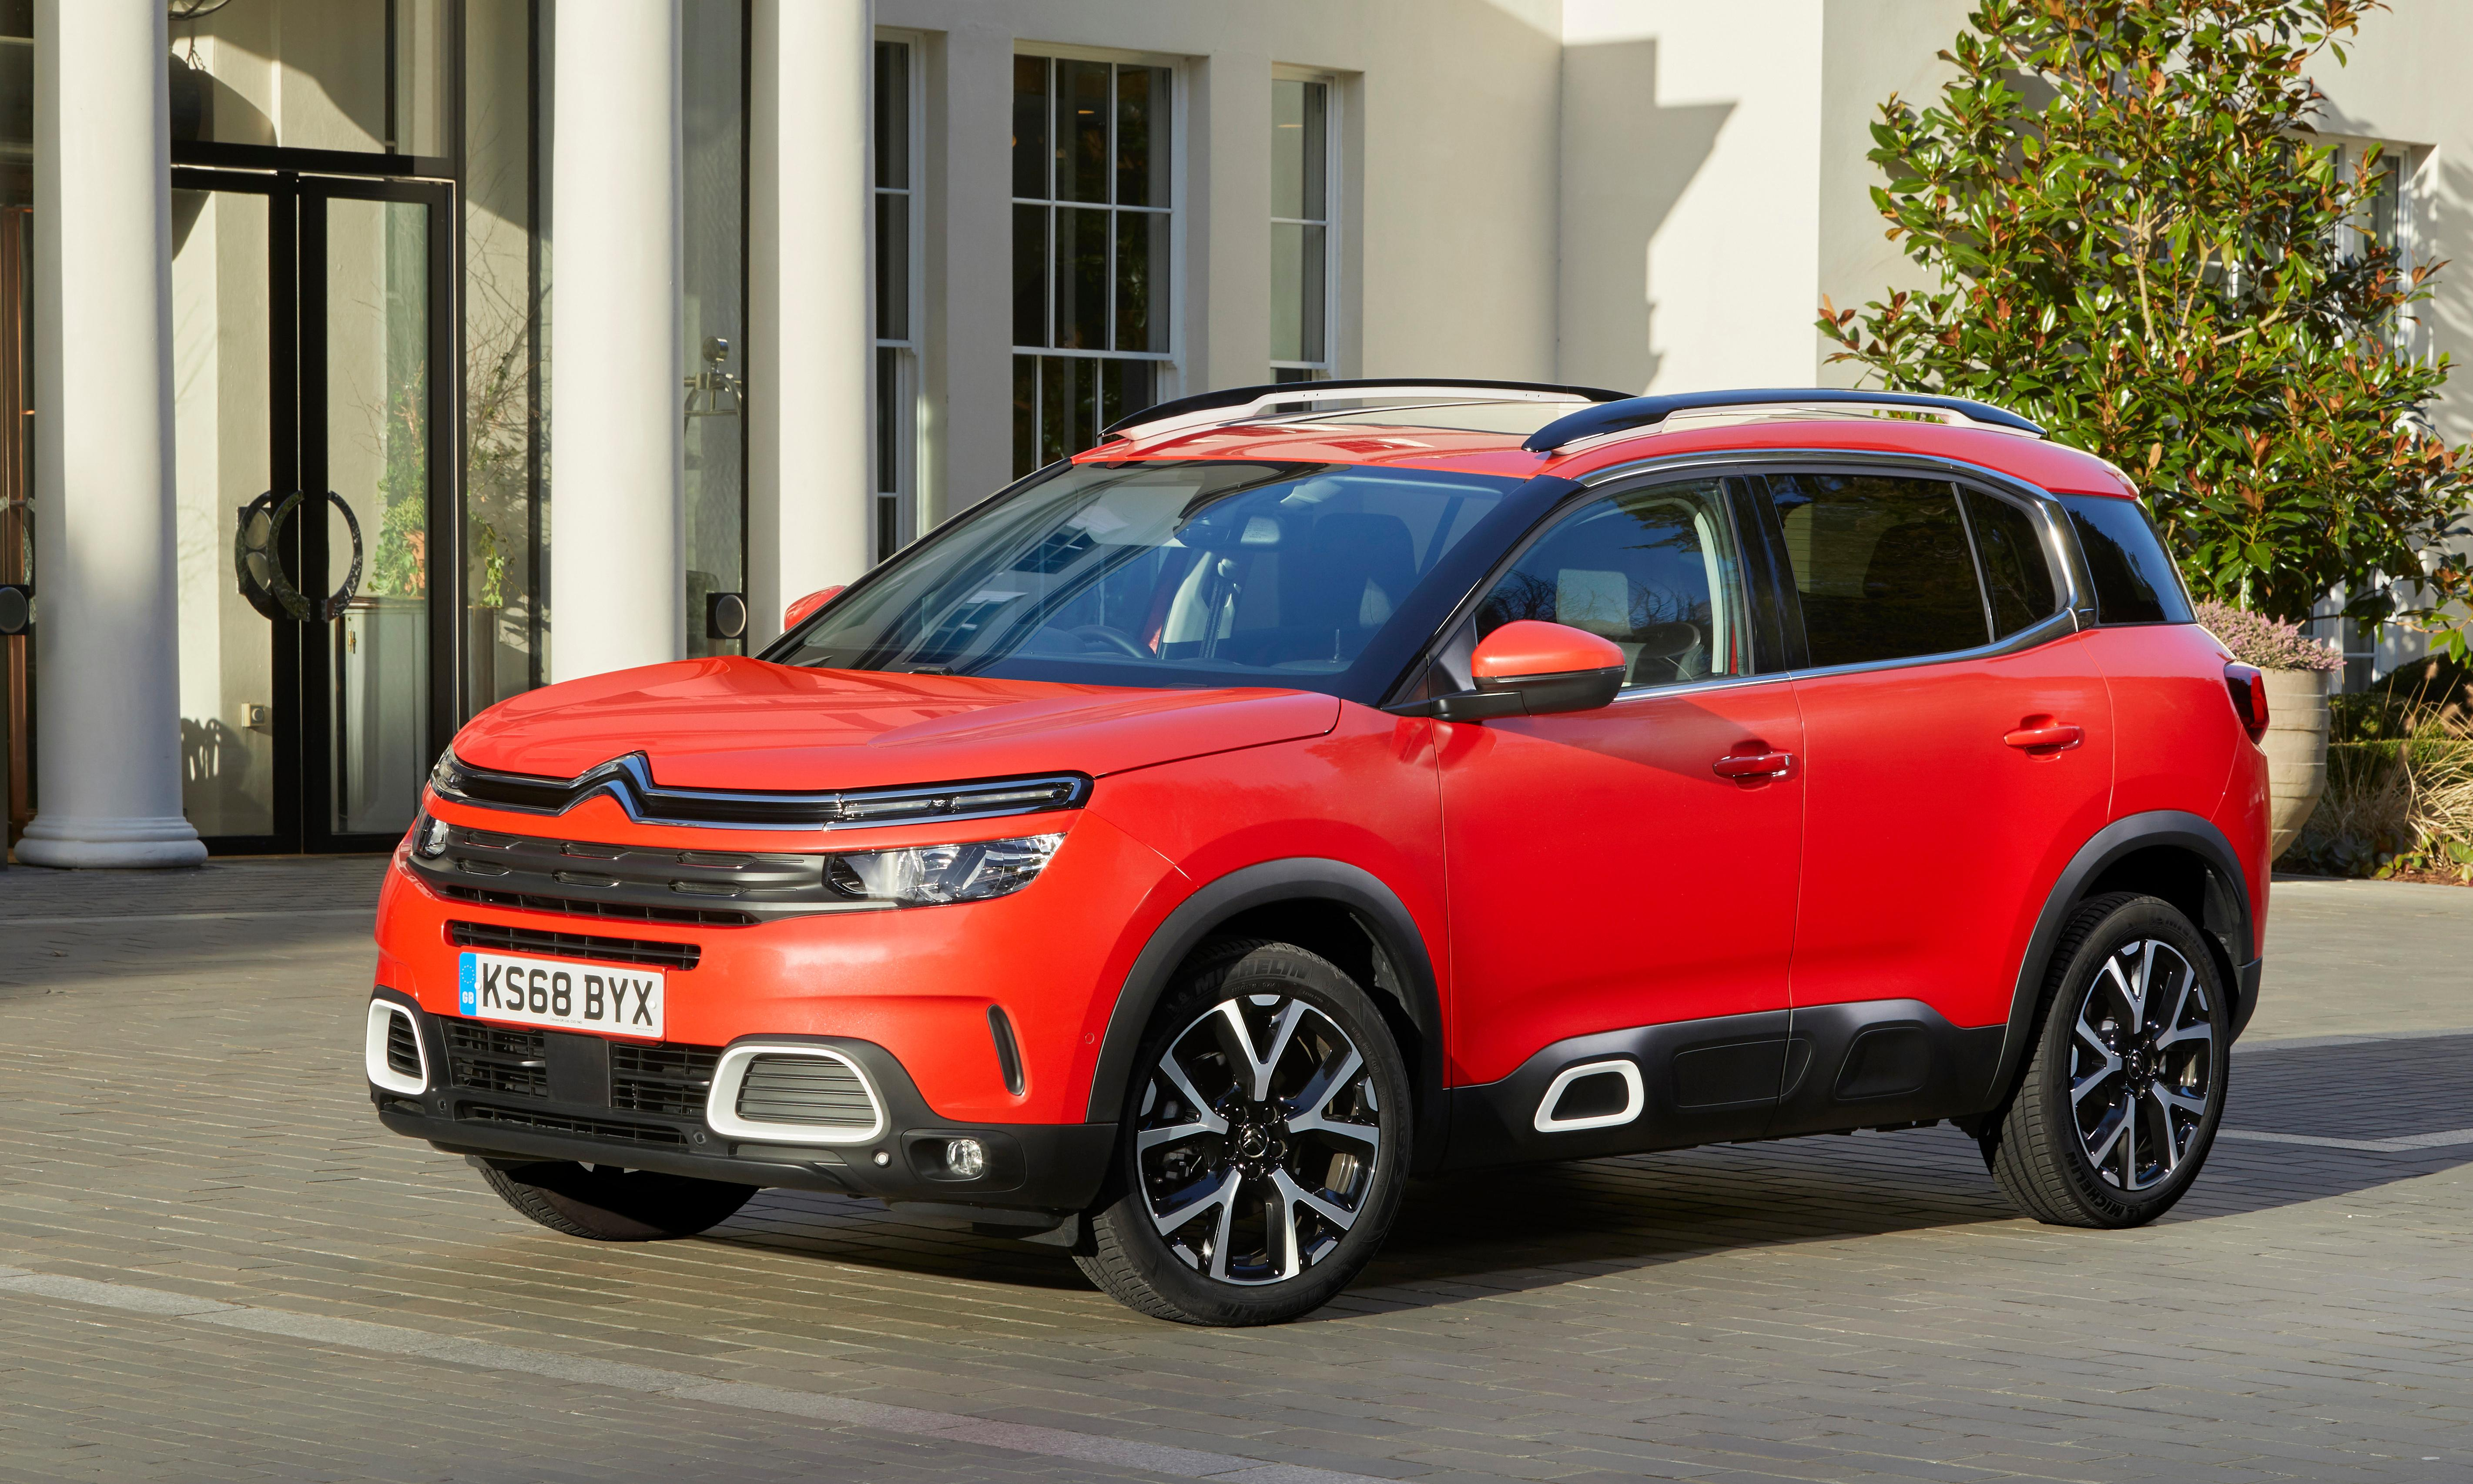 Citroën C5 Aircross: 'An SUV that's determined to smooth out your drive'